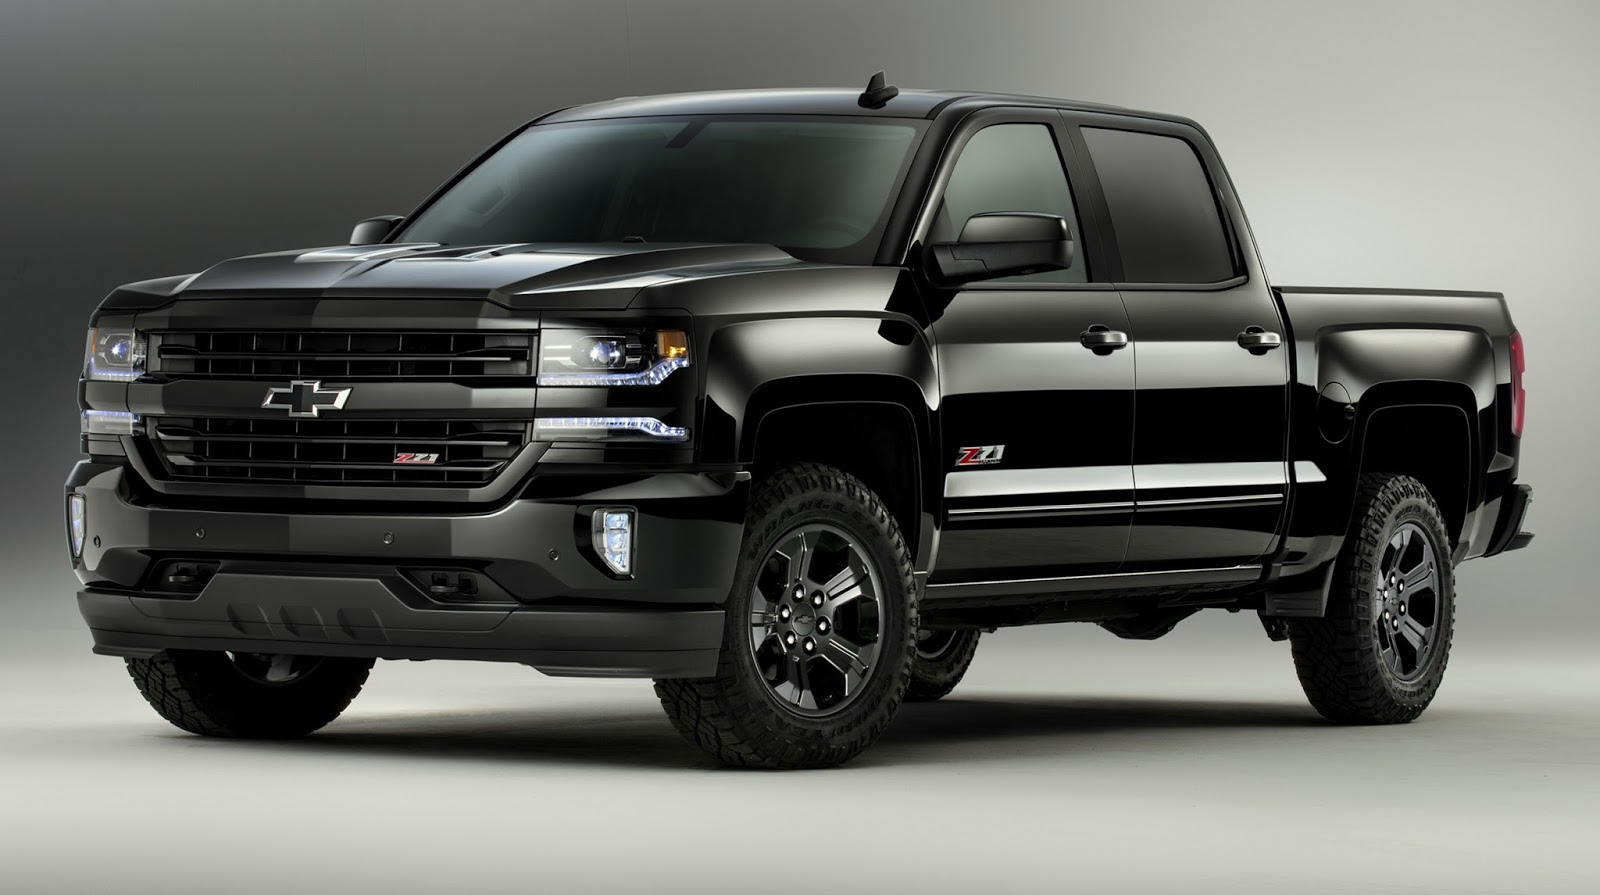 Chevrolet held a special event to highlight the special edition silverado trucks at the texas motor speedway the silverado special edition packages have